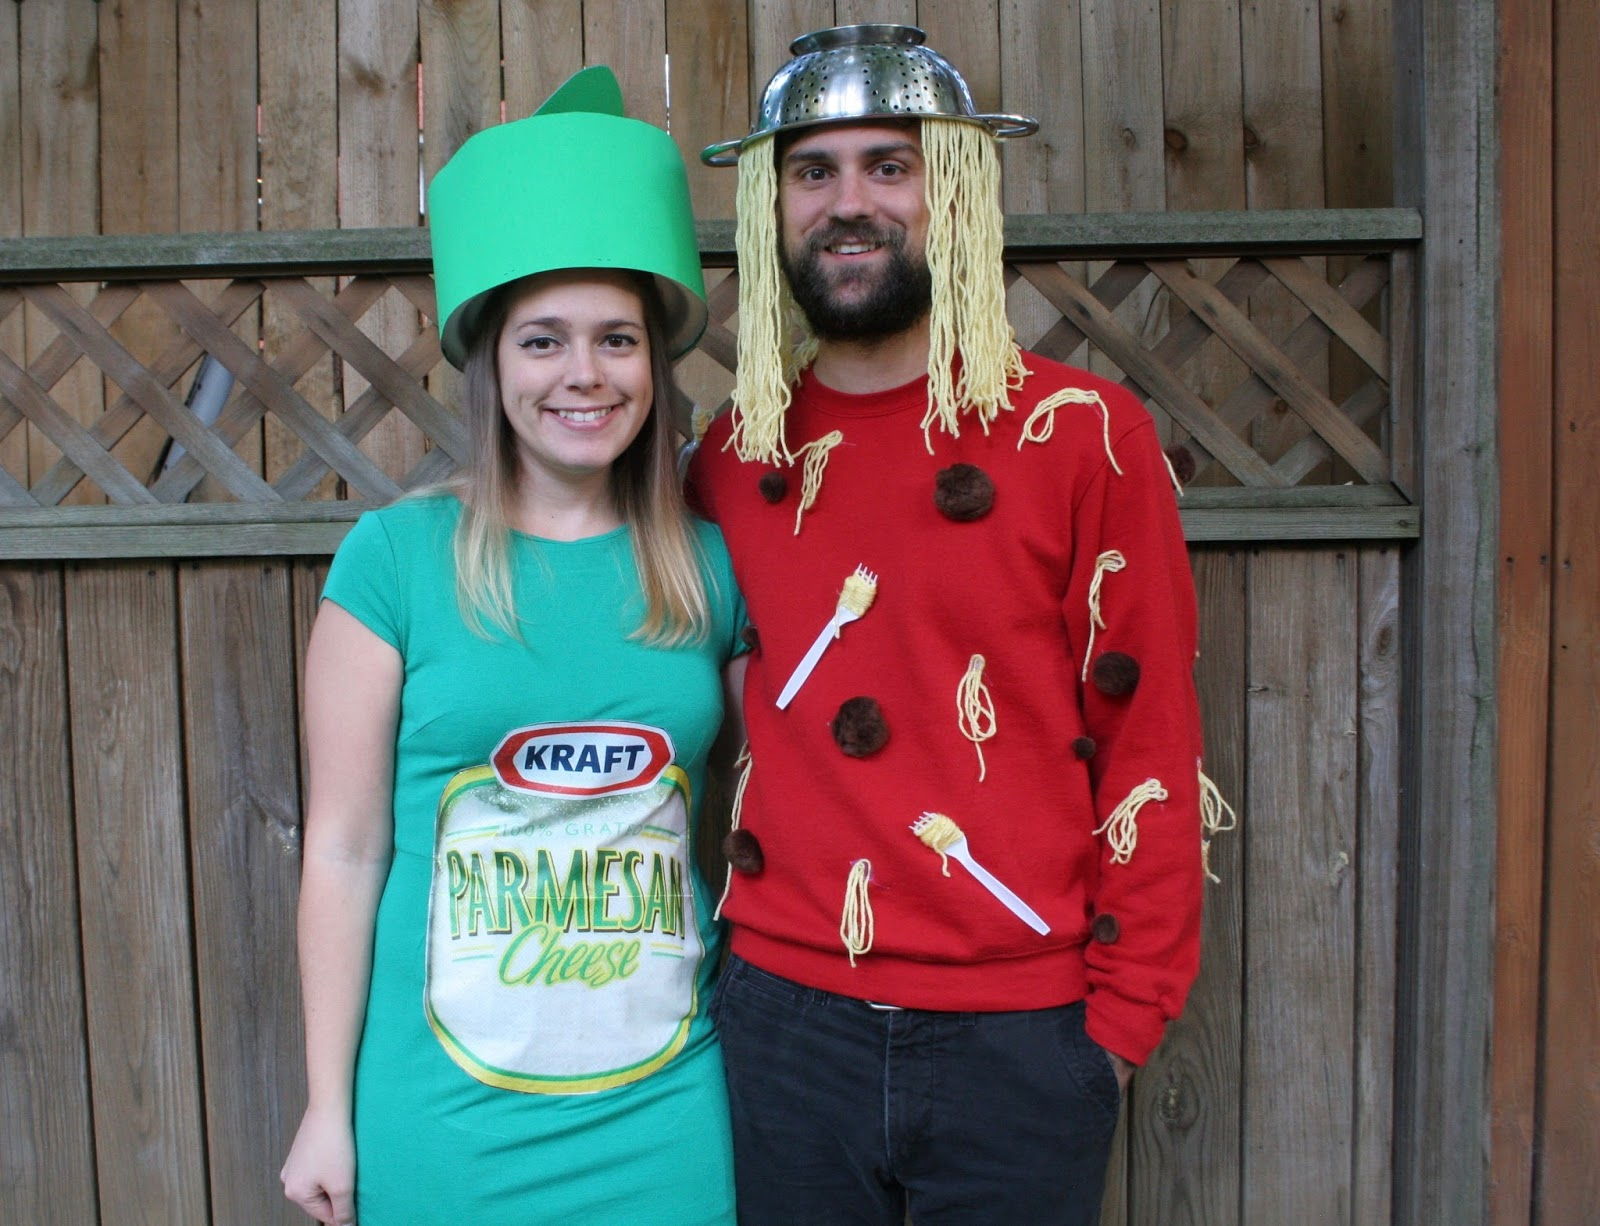 Our Halloween Costumes: Spaghetti & Parmesan Cheese - The Surznick ...